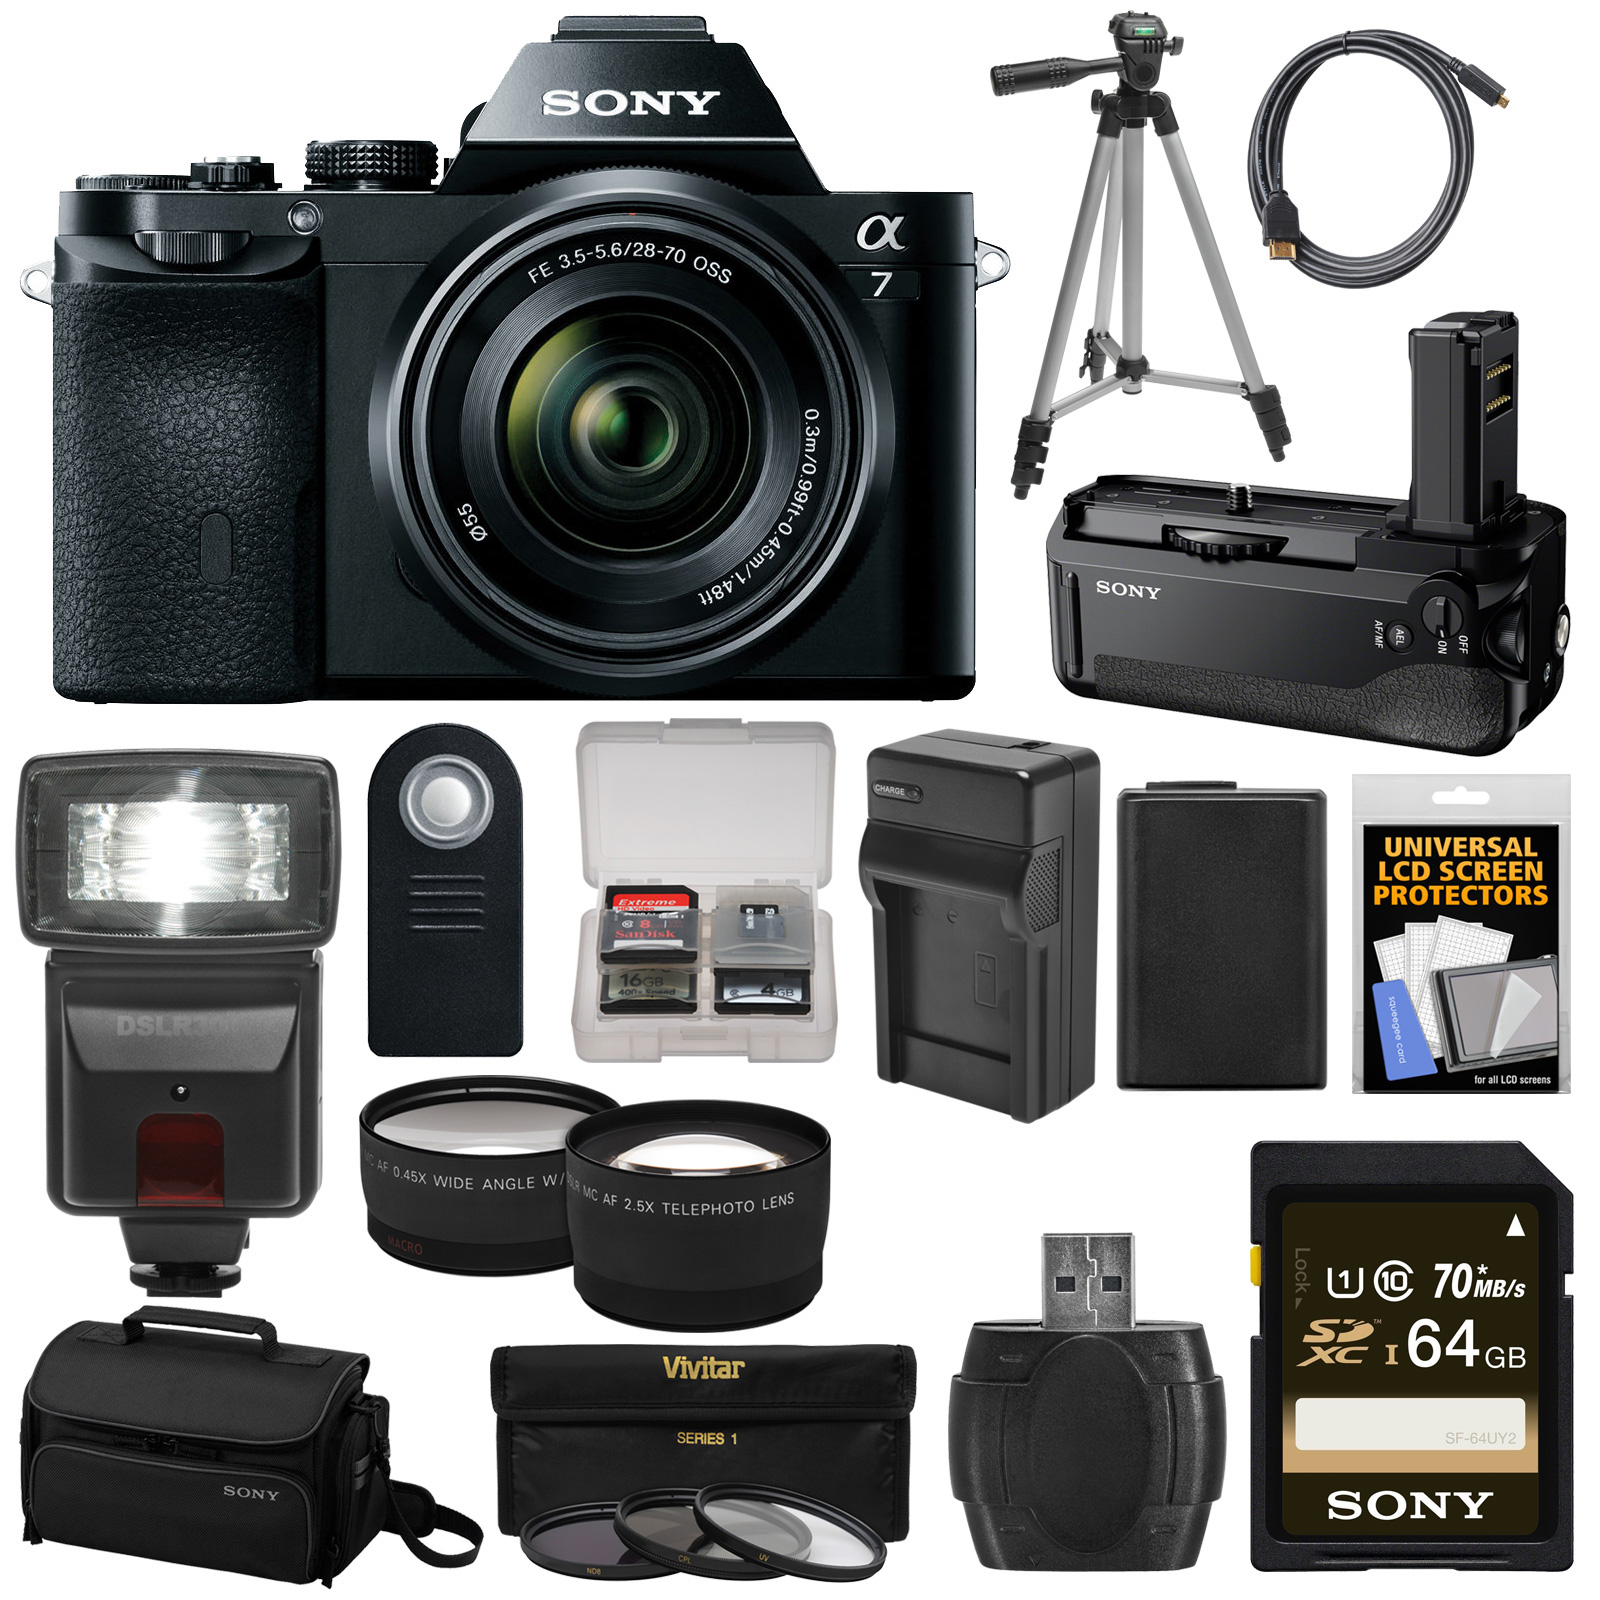 Sony Alpha A7 Digital Camera & 28-70mm FE OSS Lens (Black) with VG-C1EM Grip + 64GB Card + Case + Battery +... by Sony